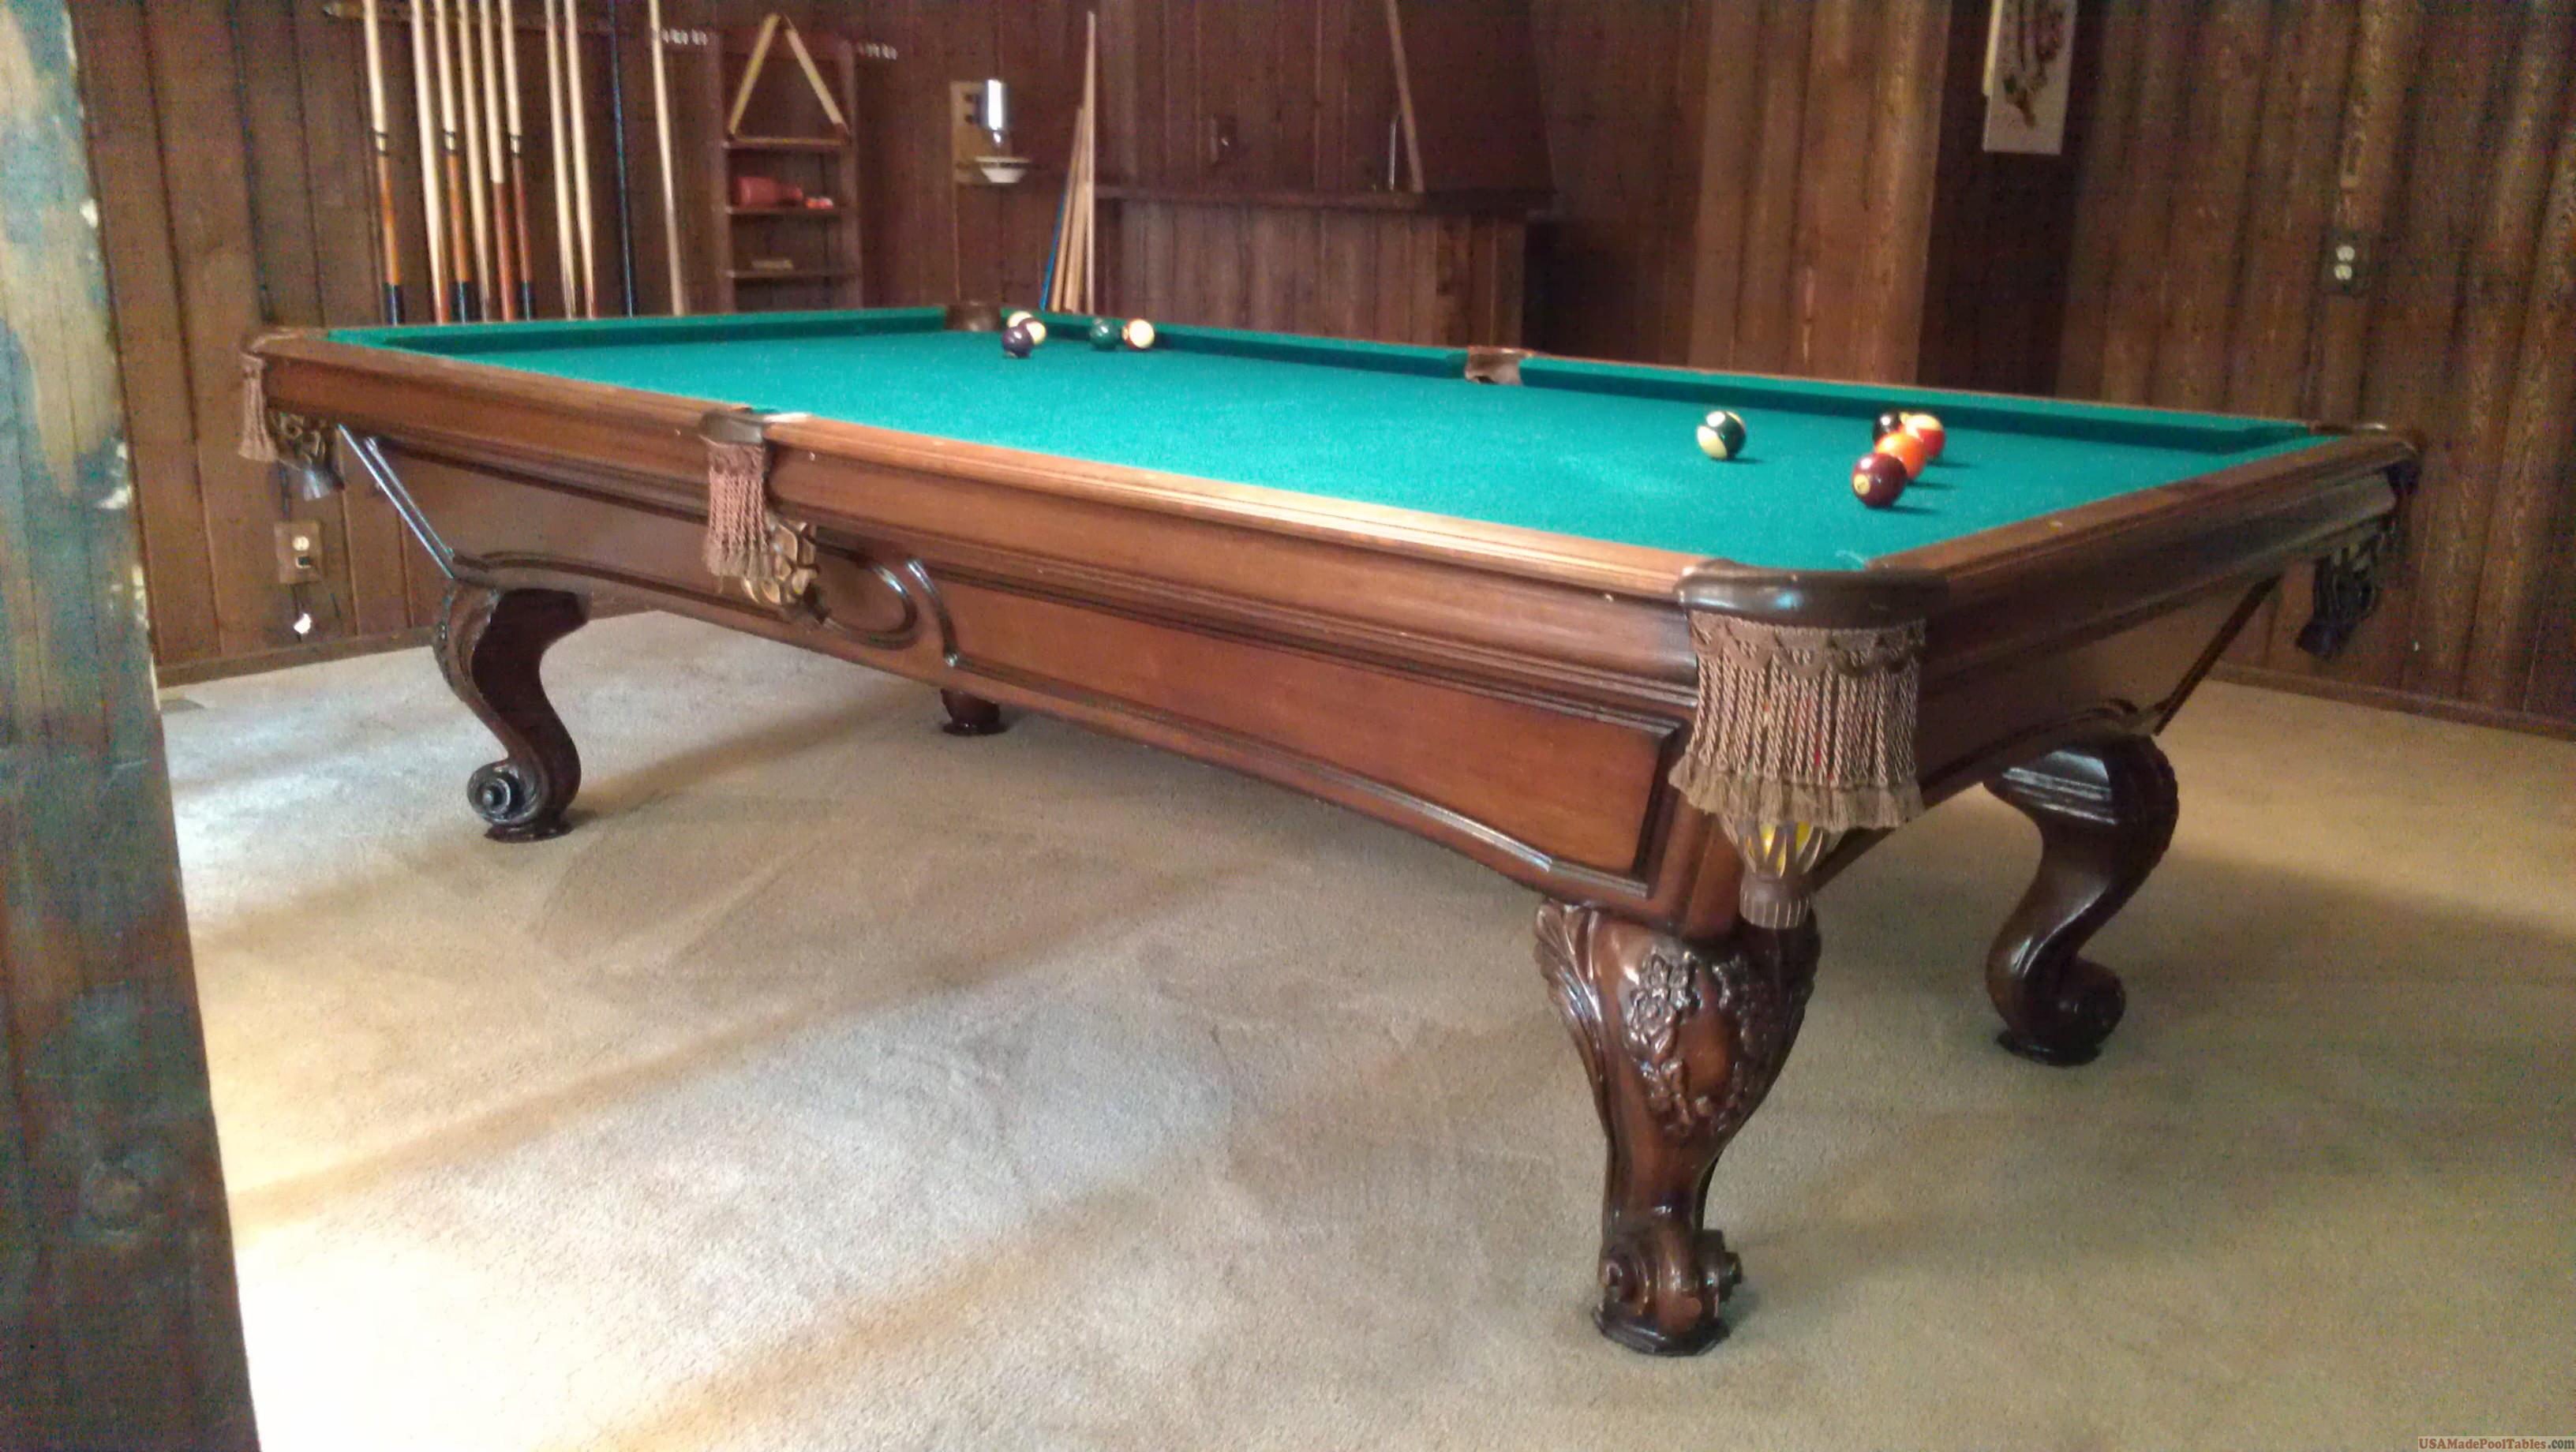 USED POOL TABLES LOS ANGELES POOL TABLES ORANGE COUNTY VENTURA - Pool table movers inland empire